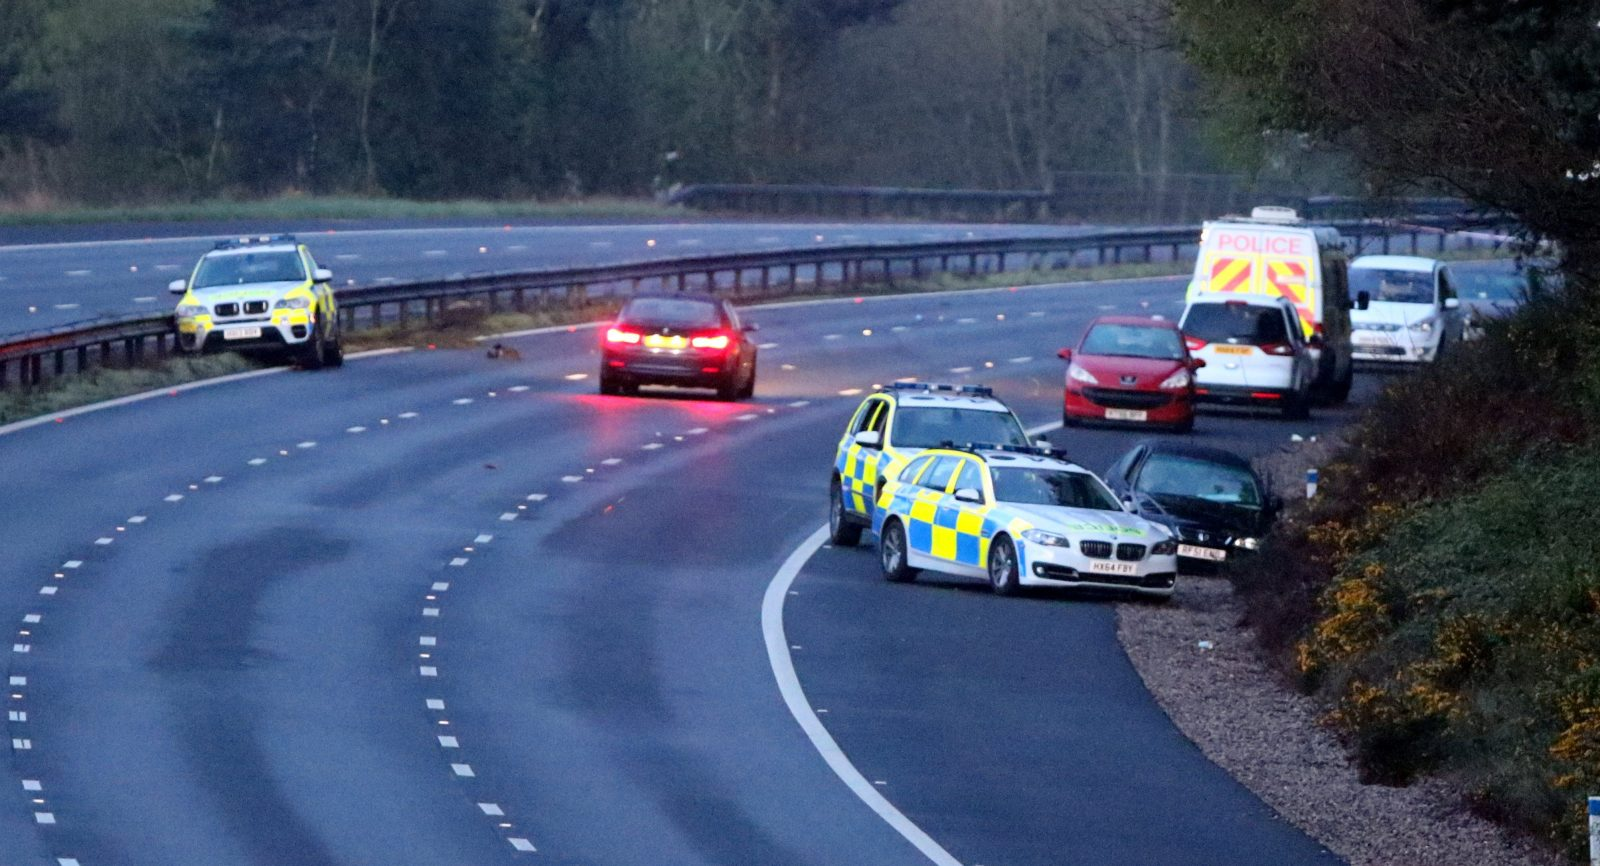 Exclusive :police Vehicles Worth 250k Written Off After Serious Police Chase  On M27 In Hampshire